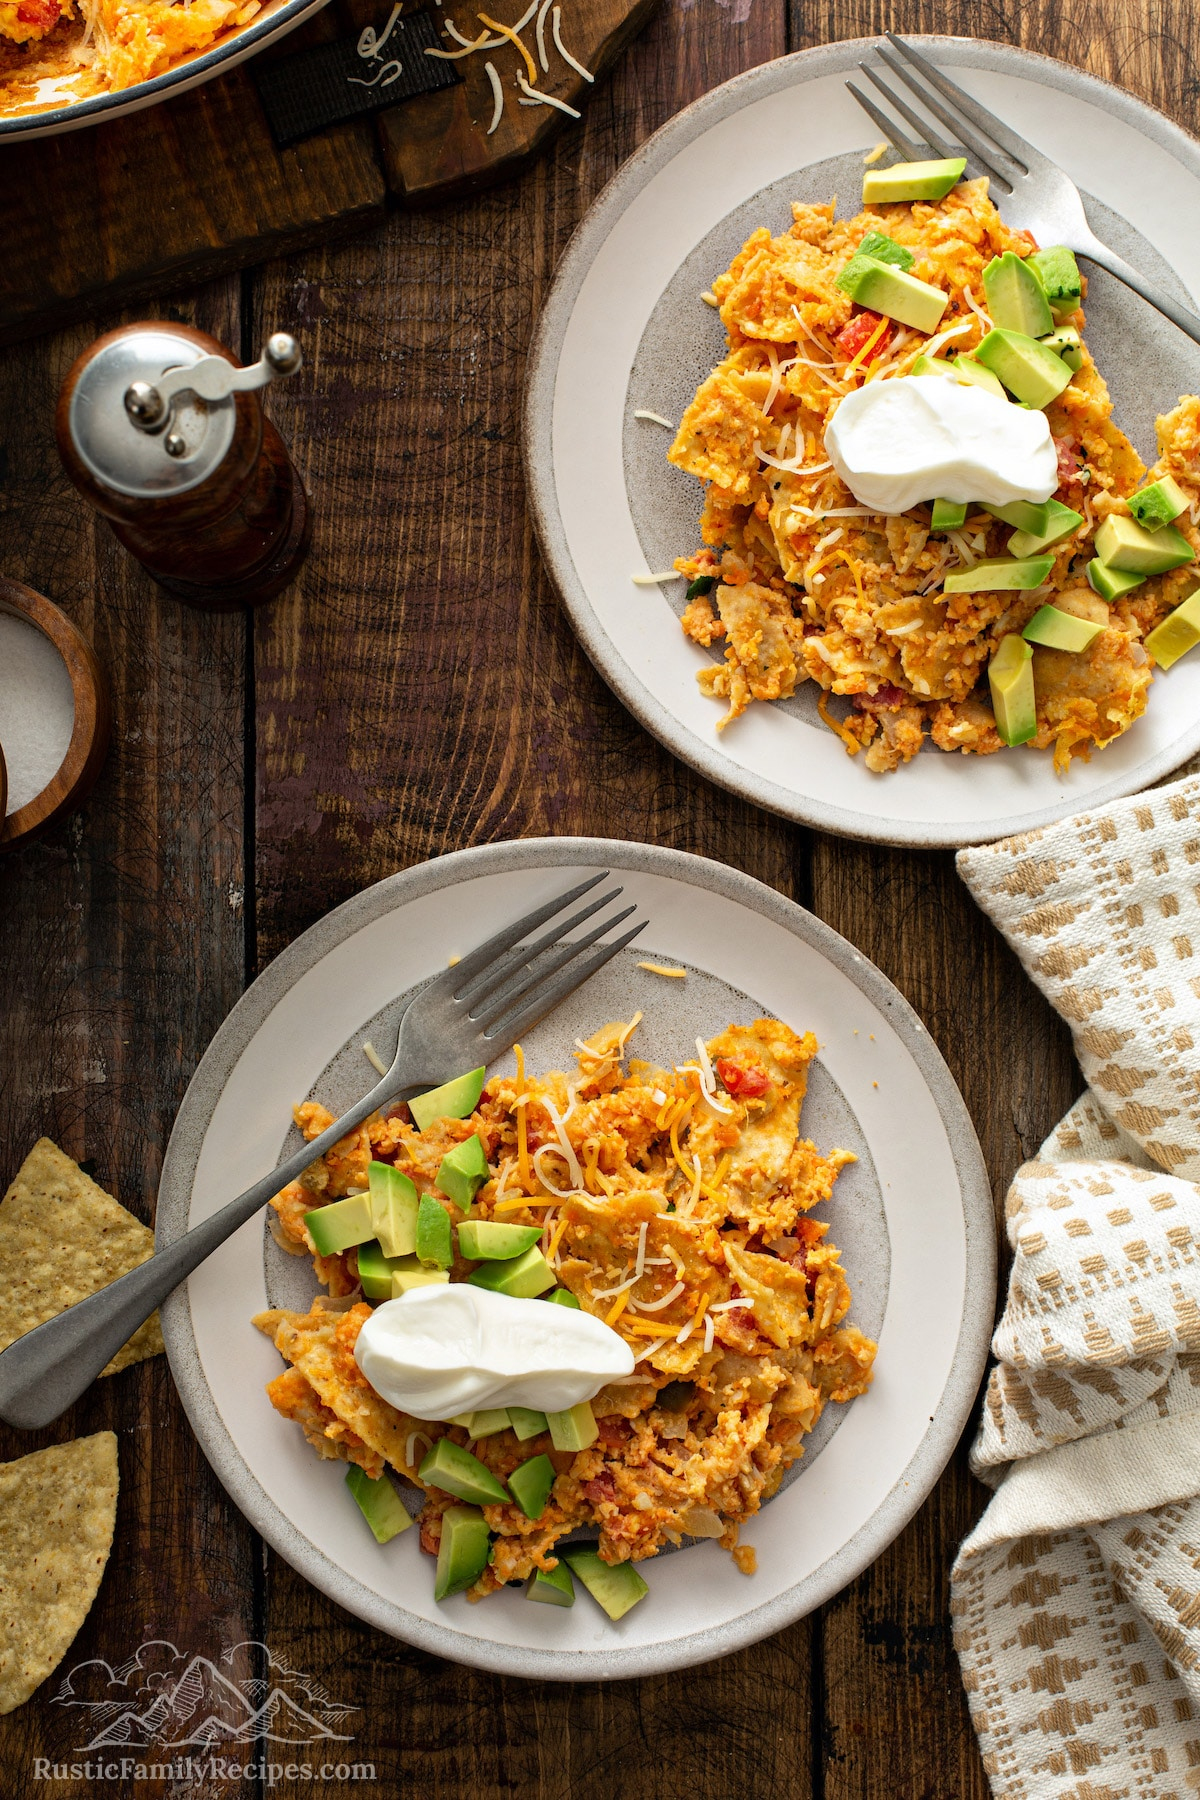 Two plates of migas with sweet potatoes, topped with sour cream and avocado